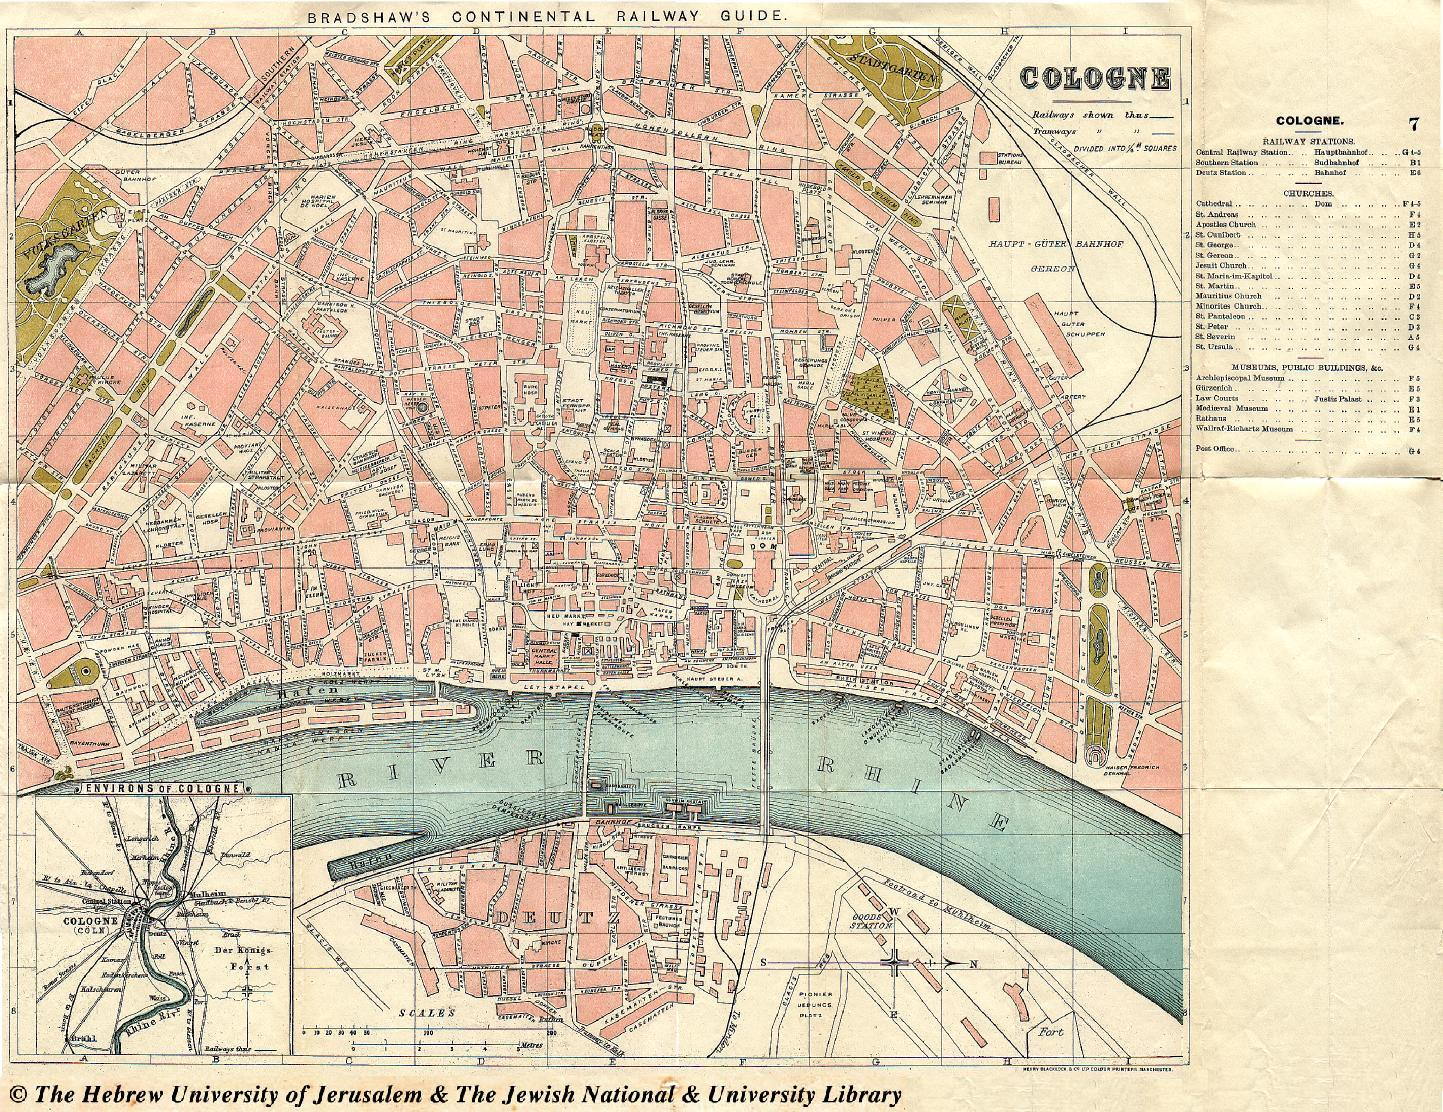 Map of cologne 1912 george bradshaw low resolution high resolution gumiabroncs Choice Image